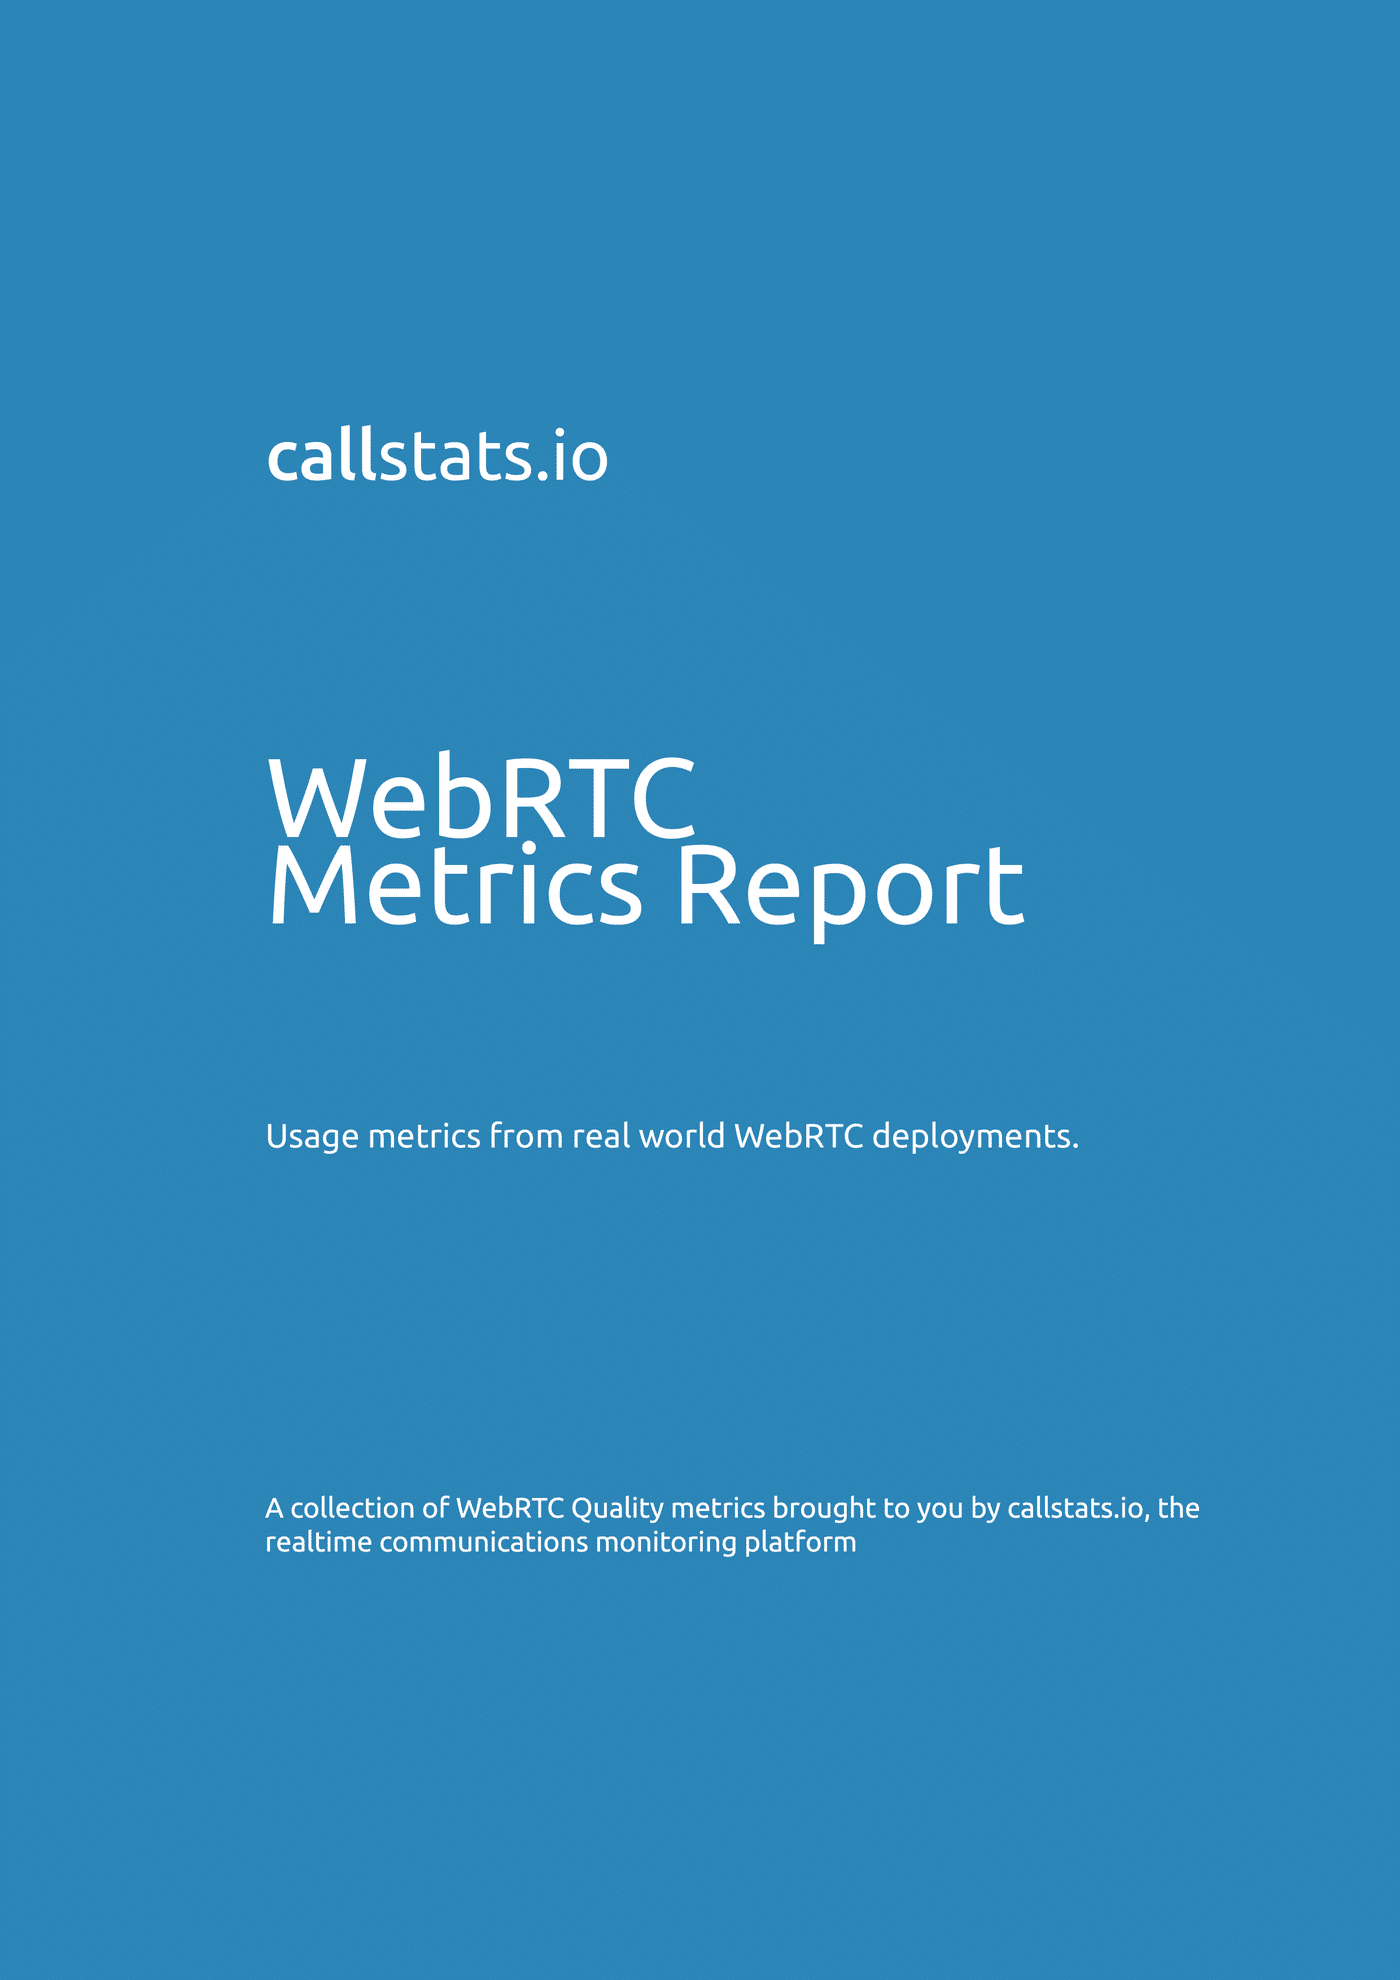 WebRTC Metrics Report series-more soon!